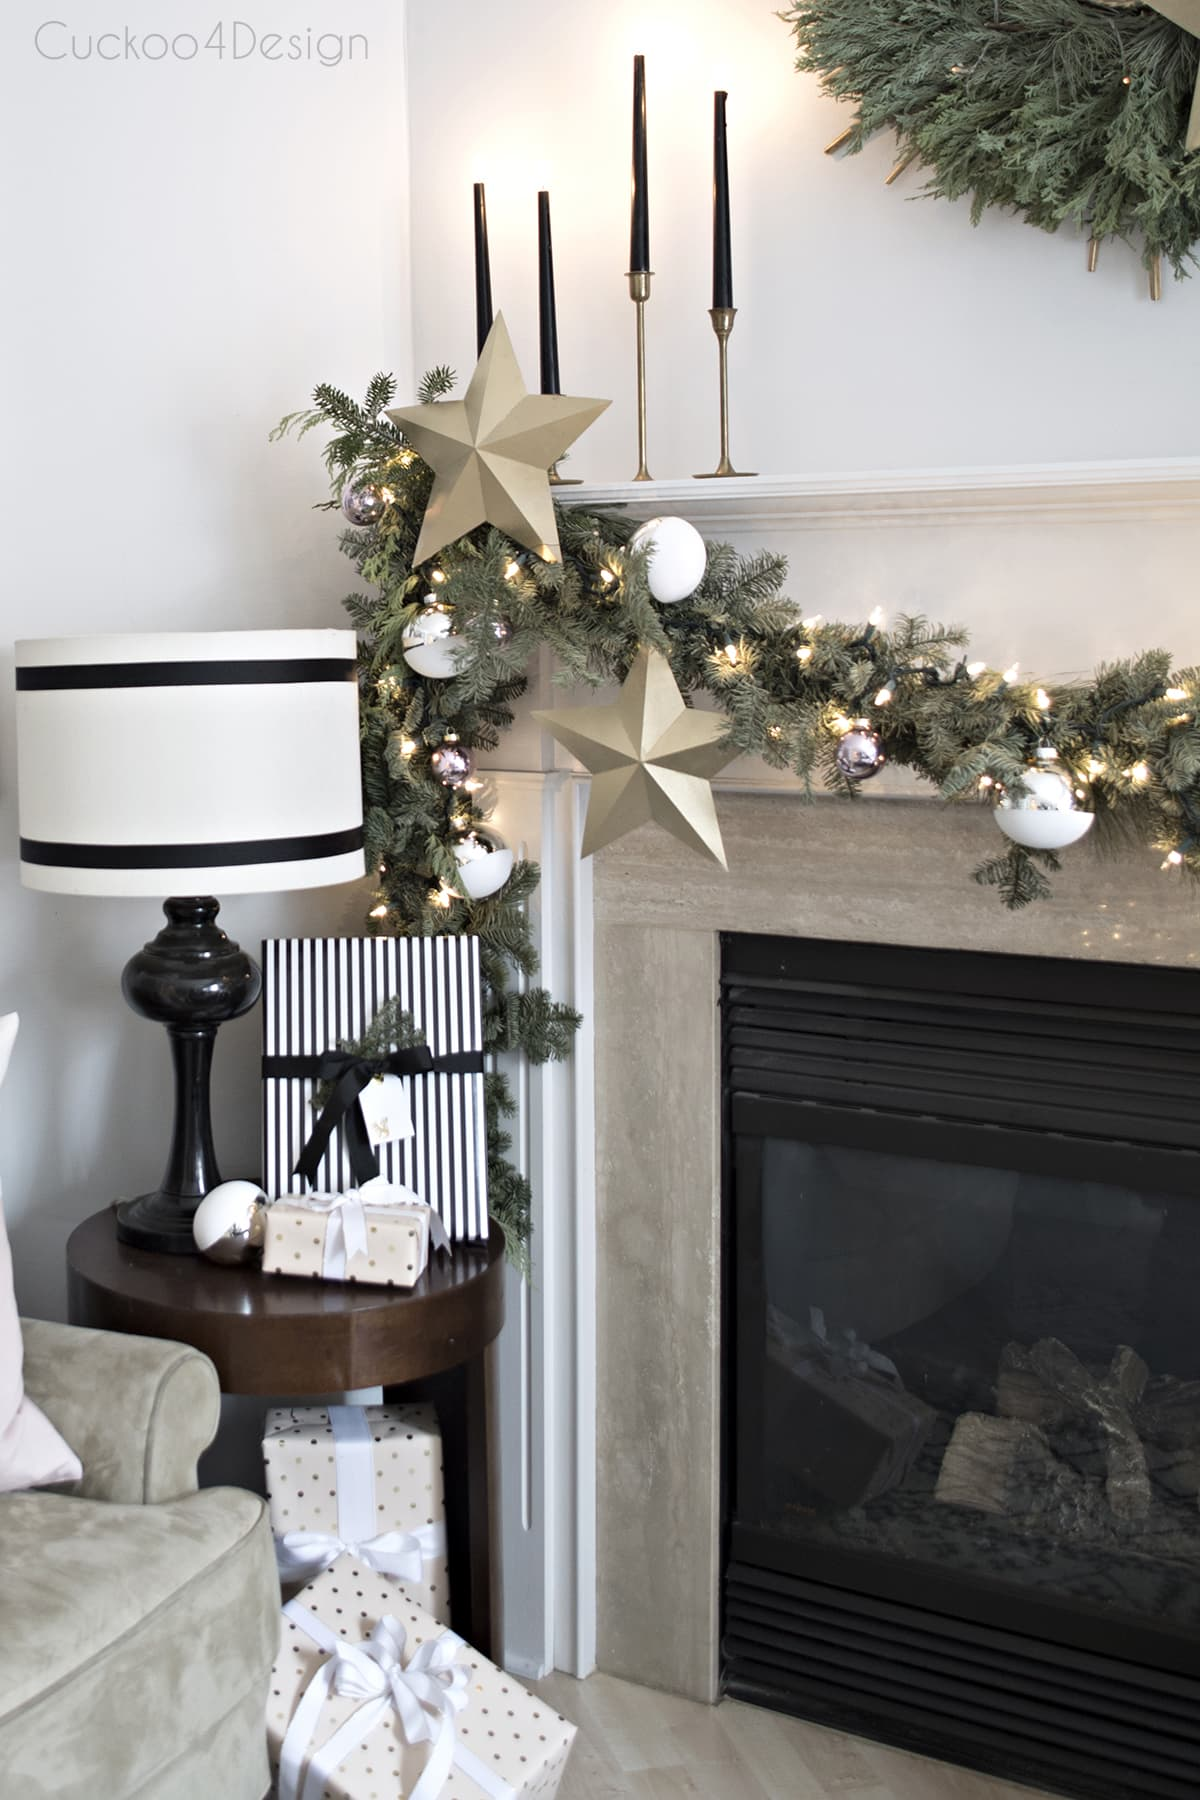 black and white fireplace area with real garland and wreath | pinecone art | cozy shag rugs and blush and metallic accents